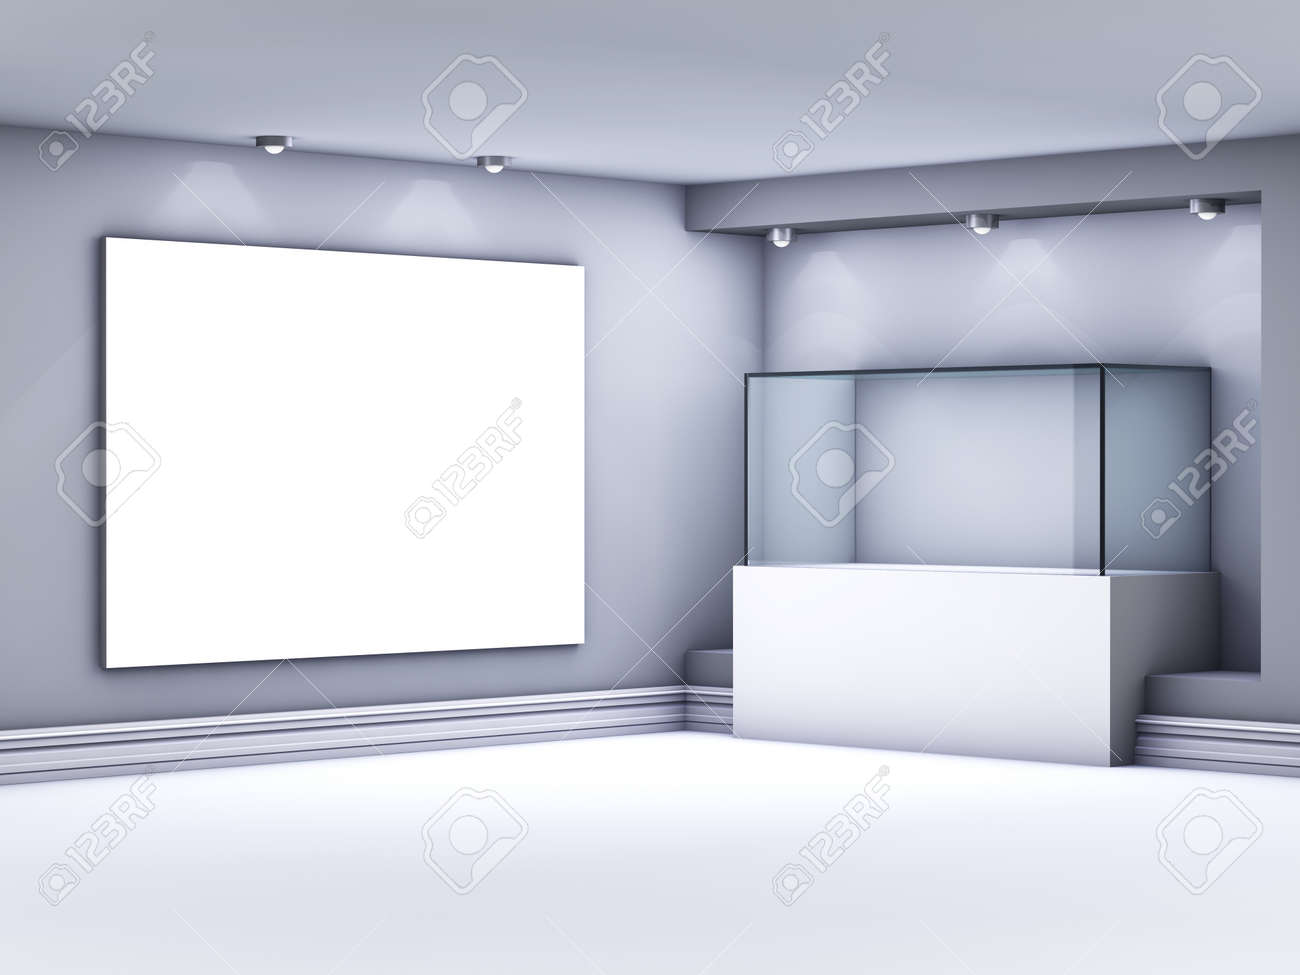 3d glass showcase and lightbox with spotlights for exhibit in